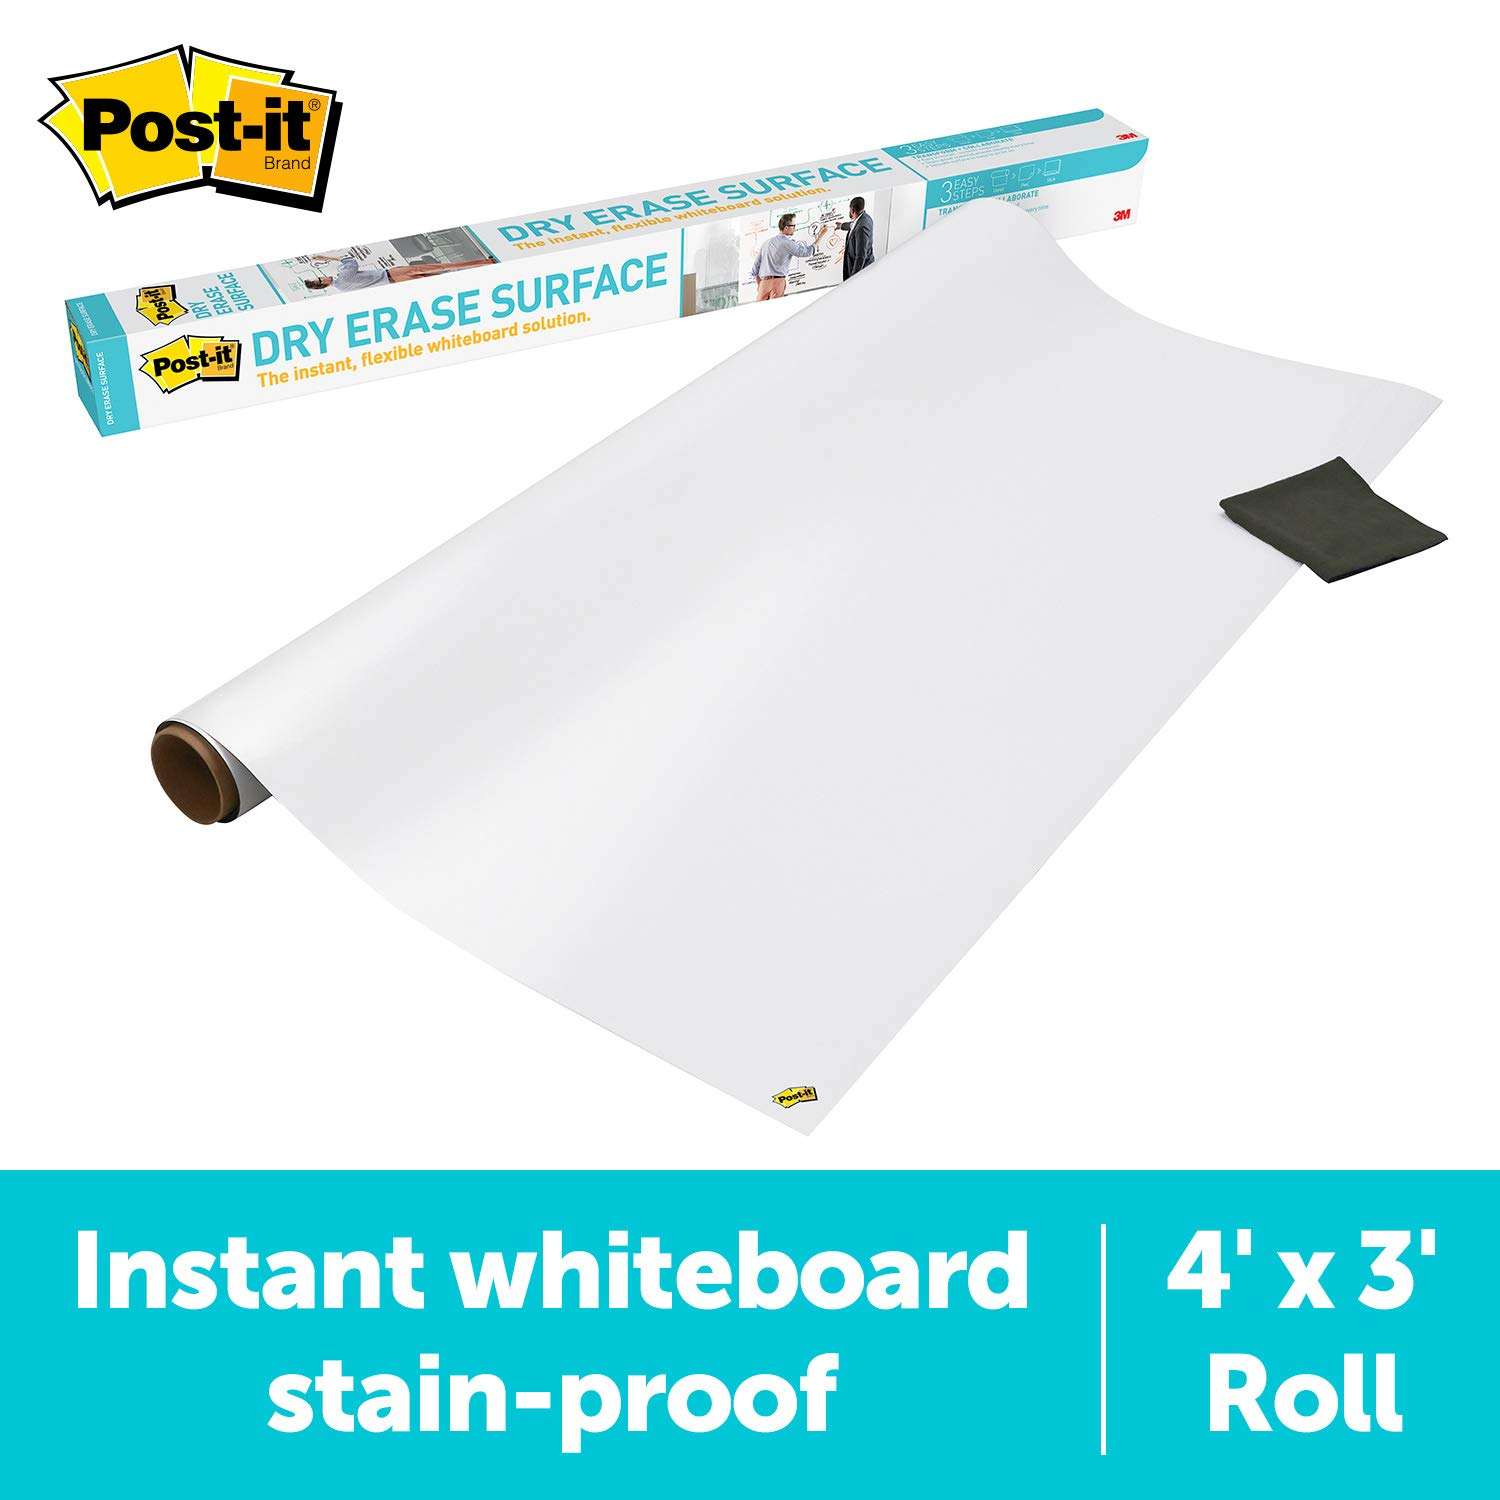 Post-it Dry Erase Surface (4 ft x 3 ft) - Great for Tables, Desks and Other Surfaces